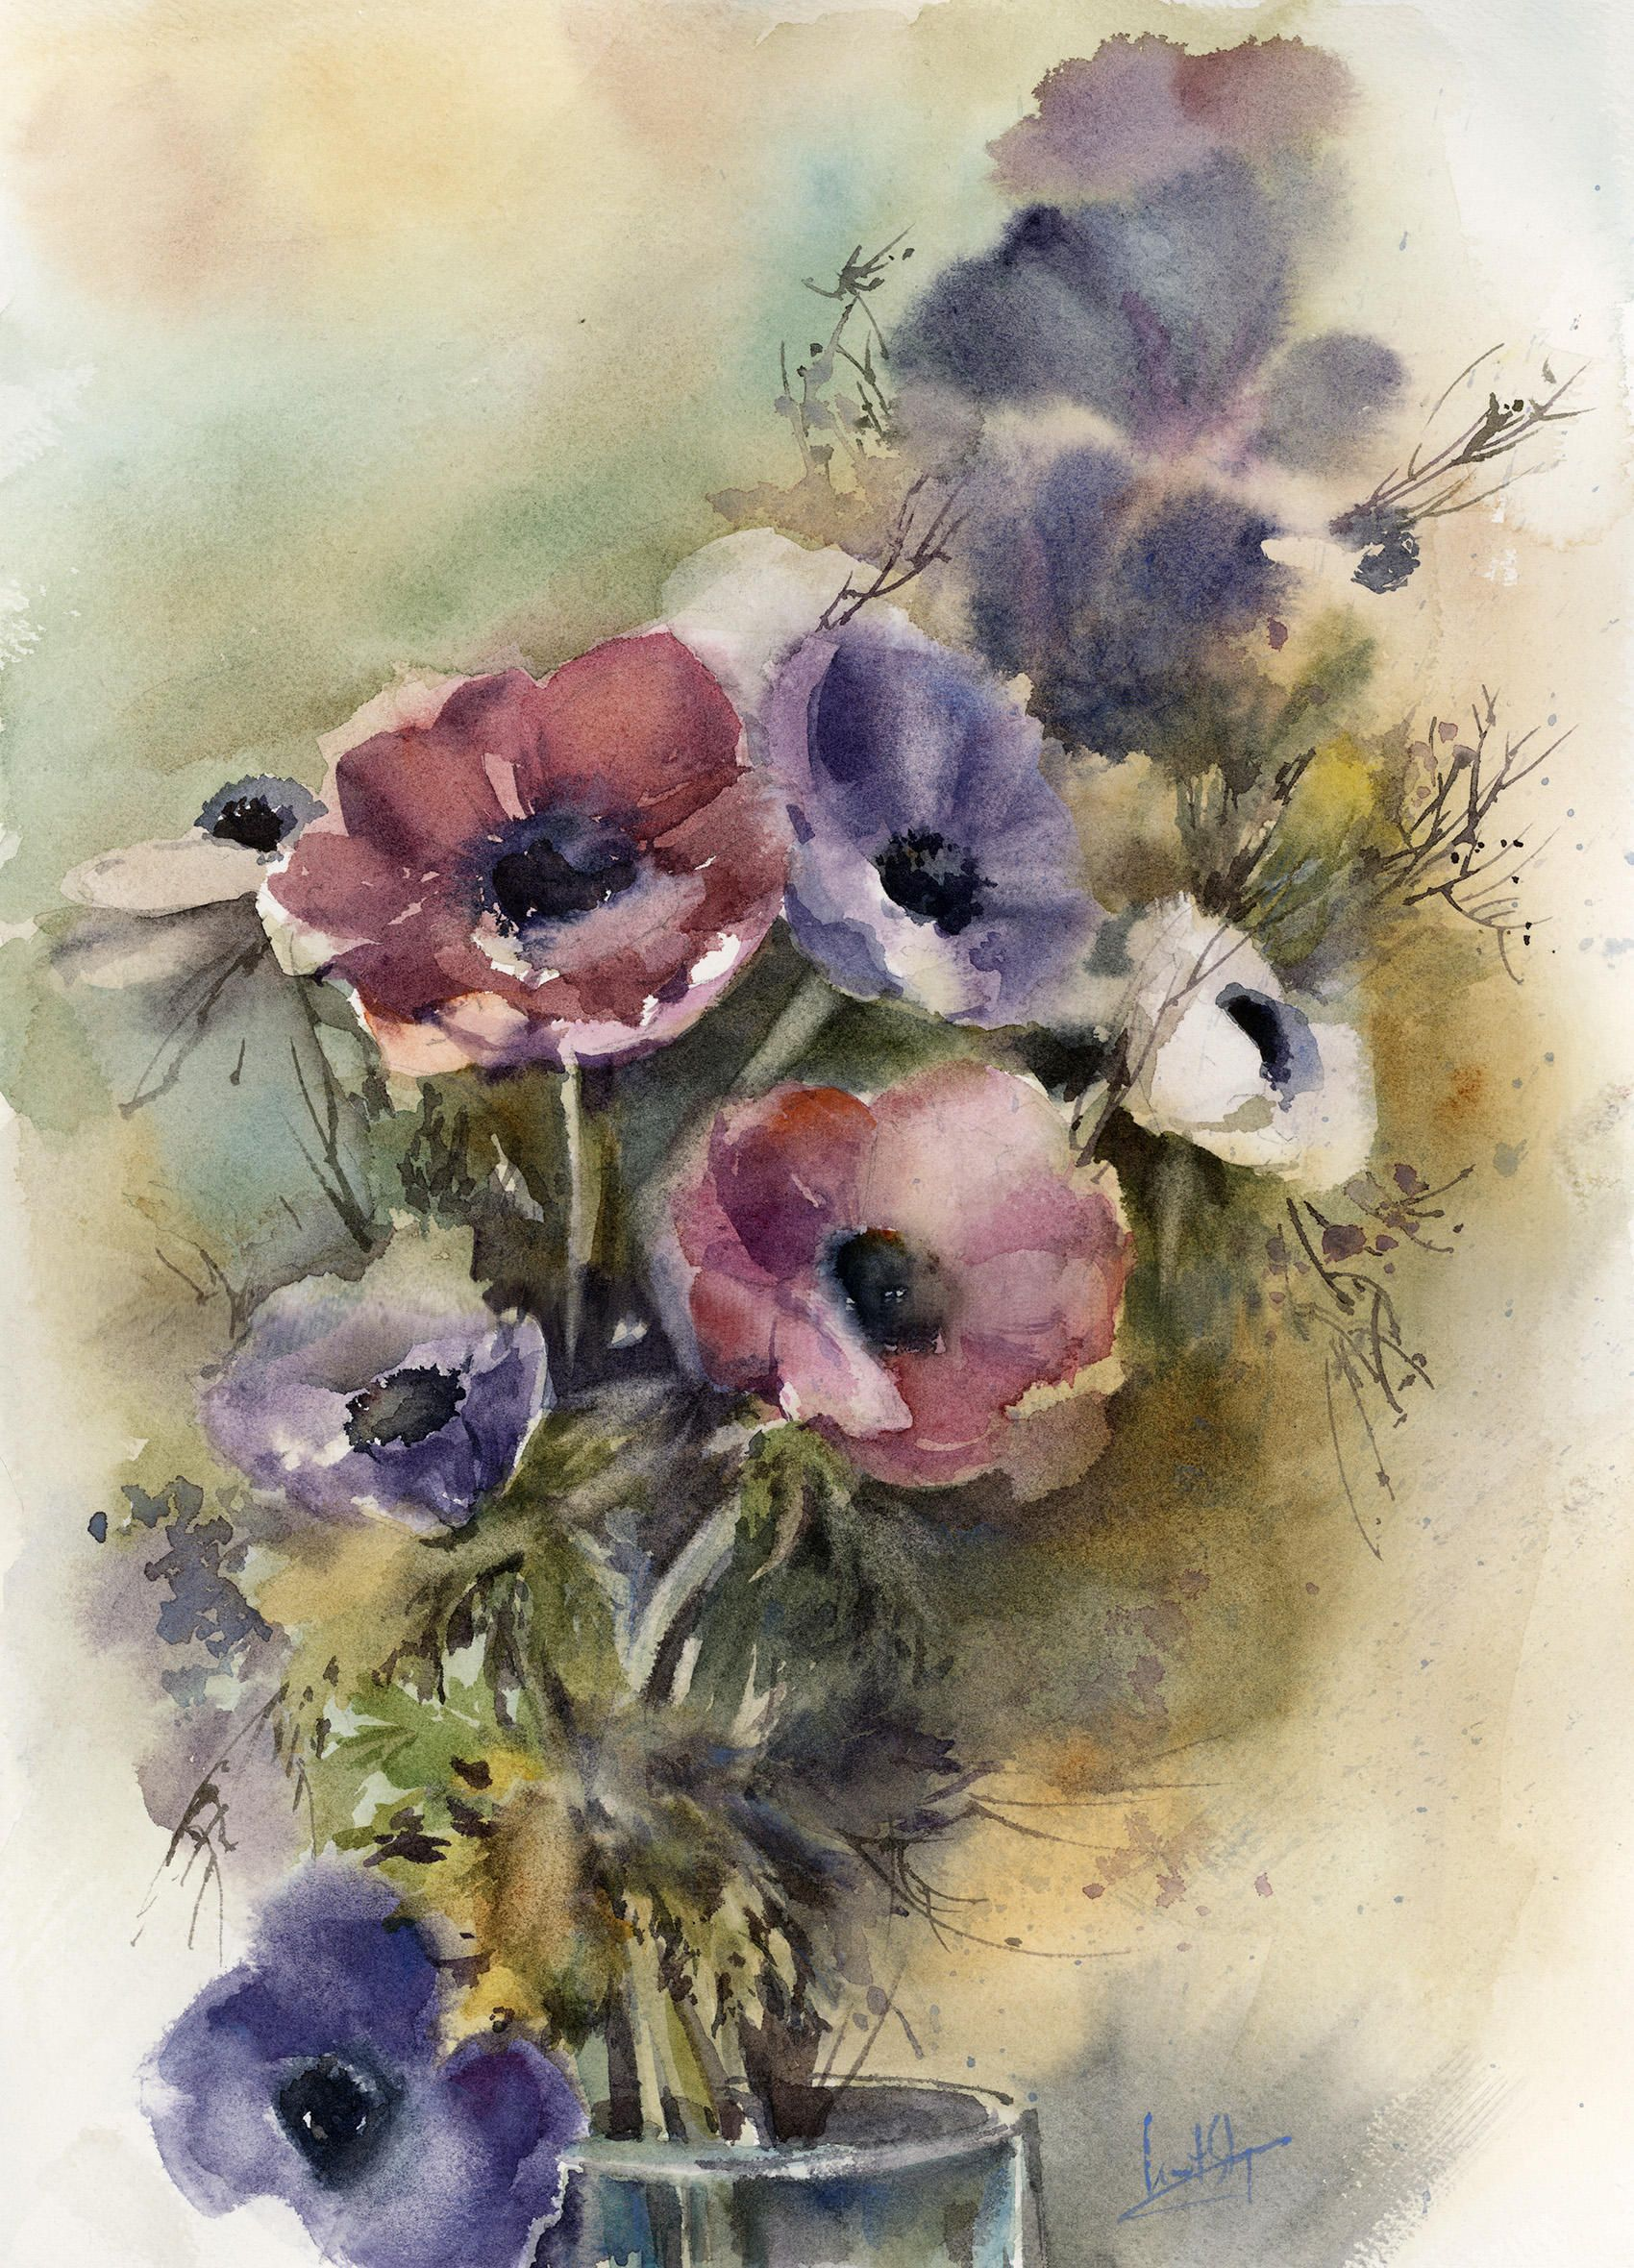 Anemone Flowers Original Watercolor Painting Pink And Blue Anemones Bouquet Watercolour Flora In 2020 Watercolor Flowers Paintings Botanical Painting Floral Painting